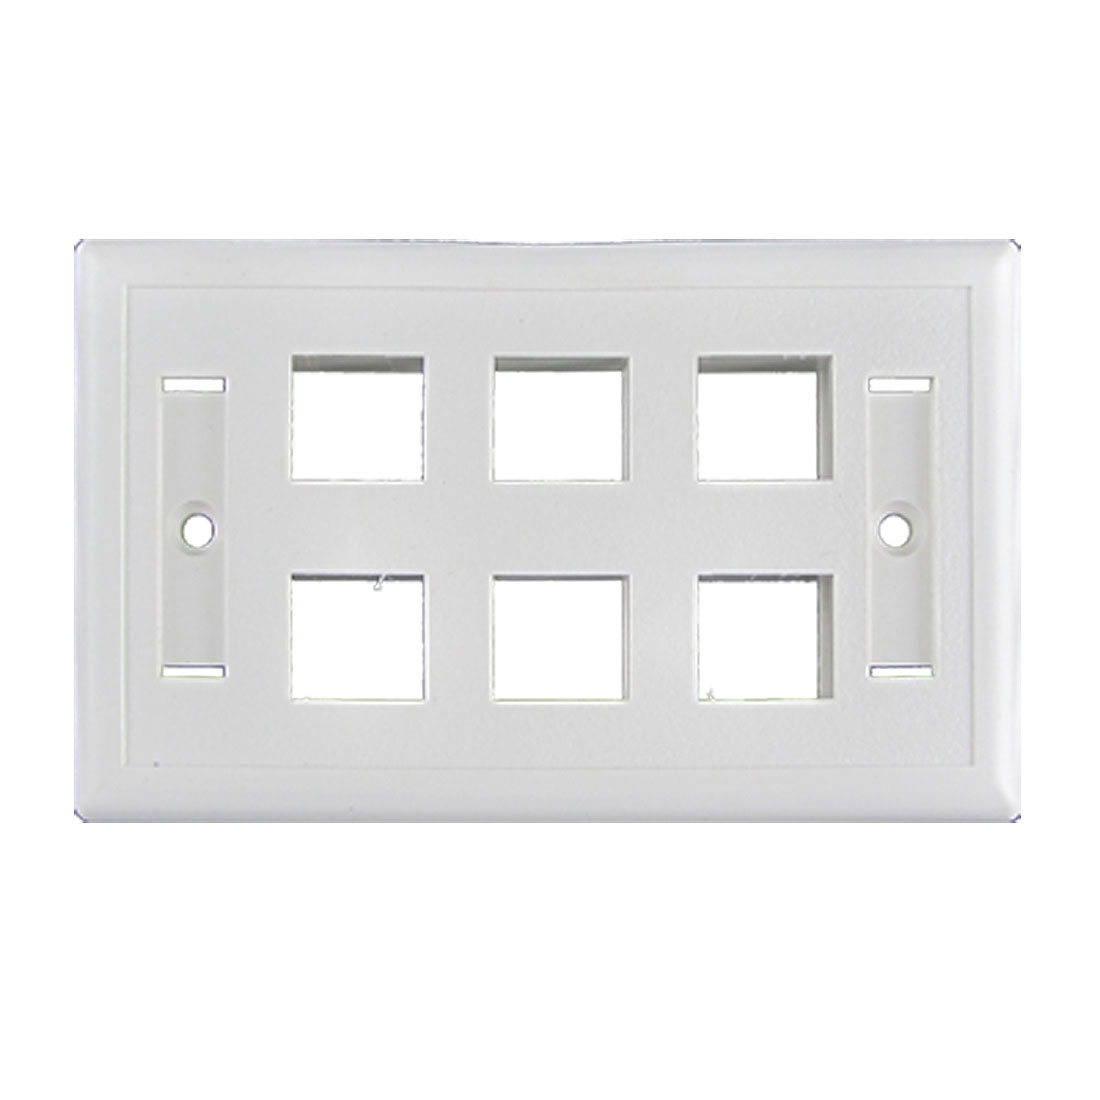 White Plastic Wall Mount 6 Gang Button Switch Plate Cover Panel